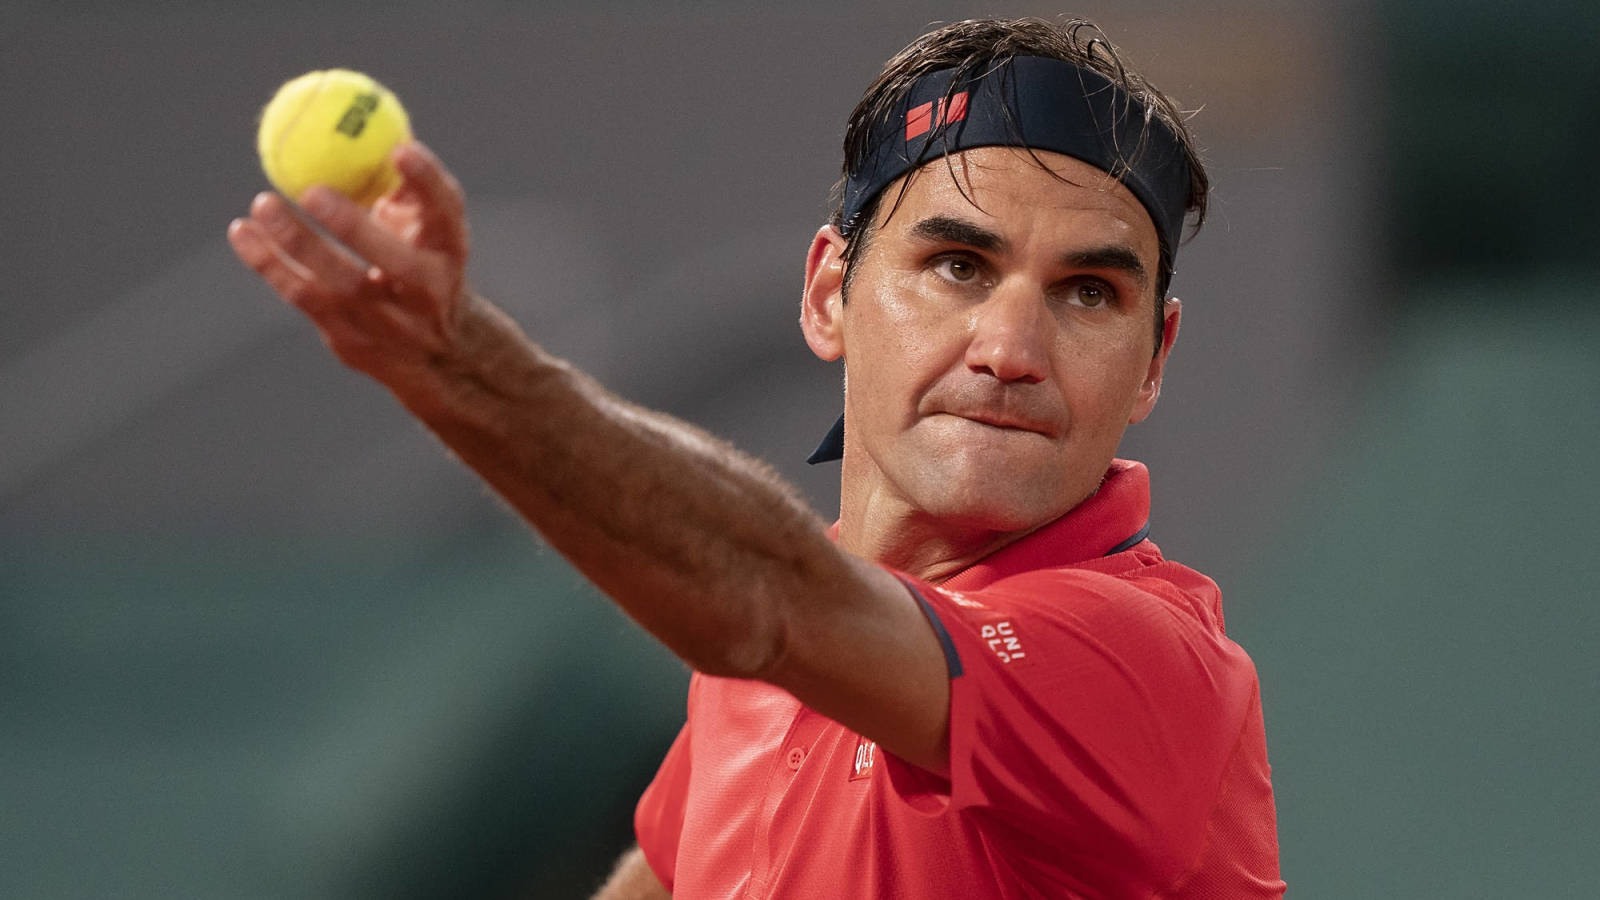 Will Roger Federer be in top form before Wimbledon?